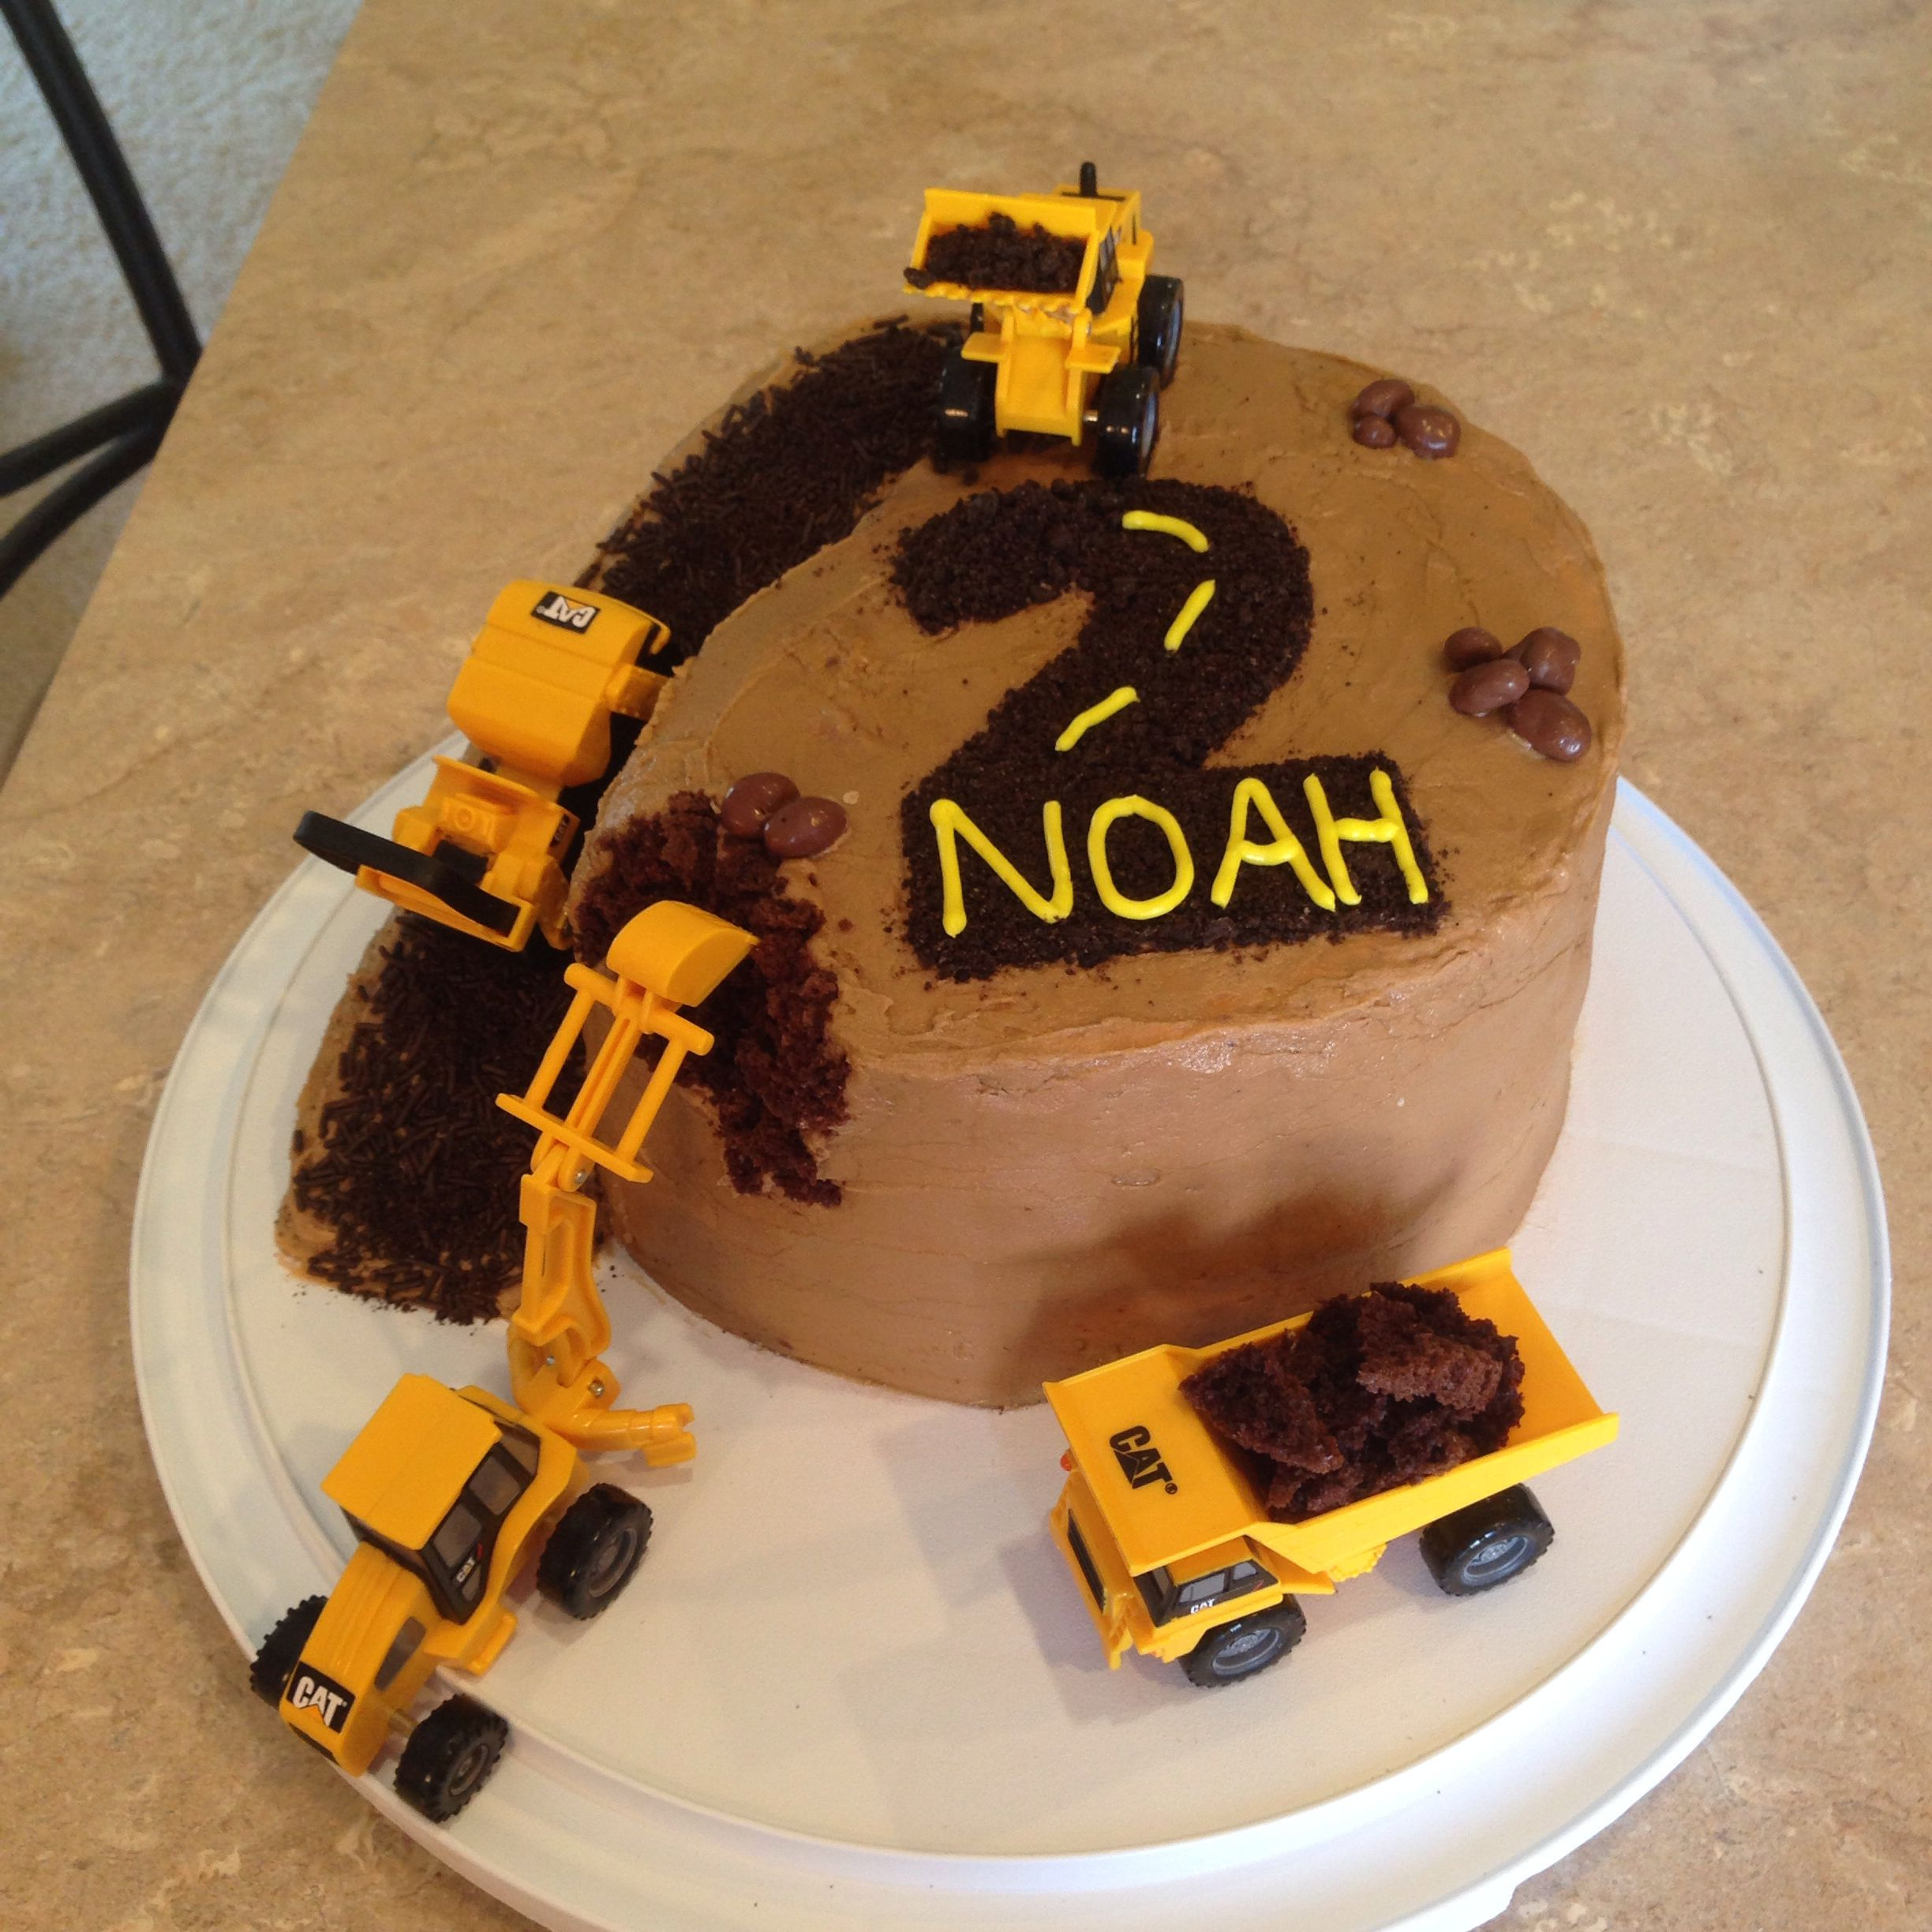 Incredible Construction Cake For My 2 Year Old Boy He Loves Trucks And Funny Birthday Cards Online Elaedamsfinfo